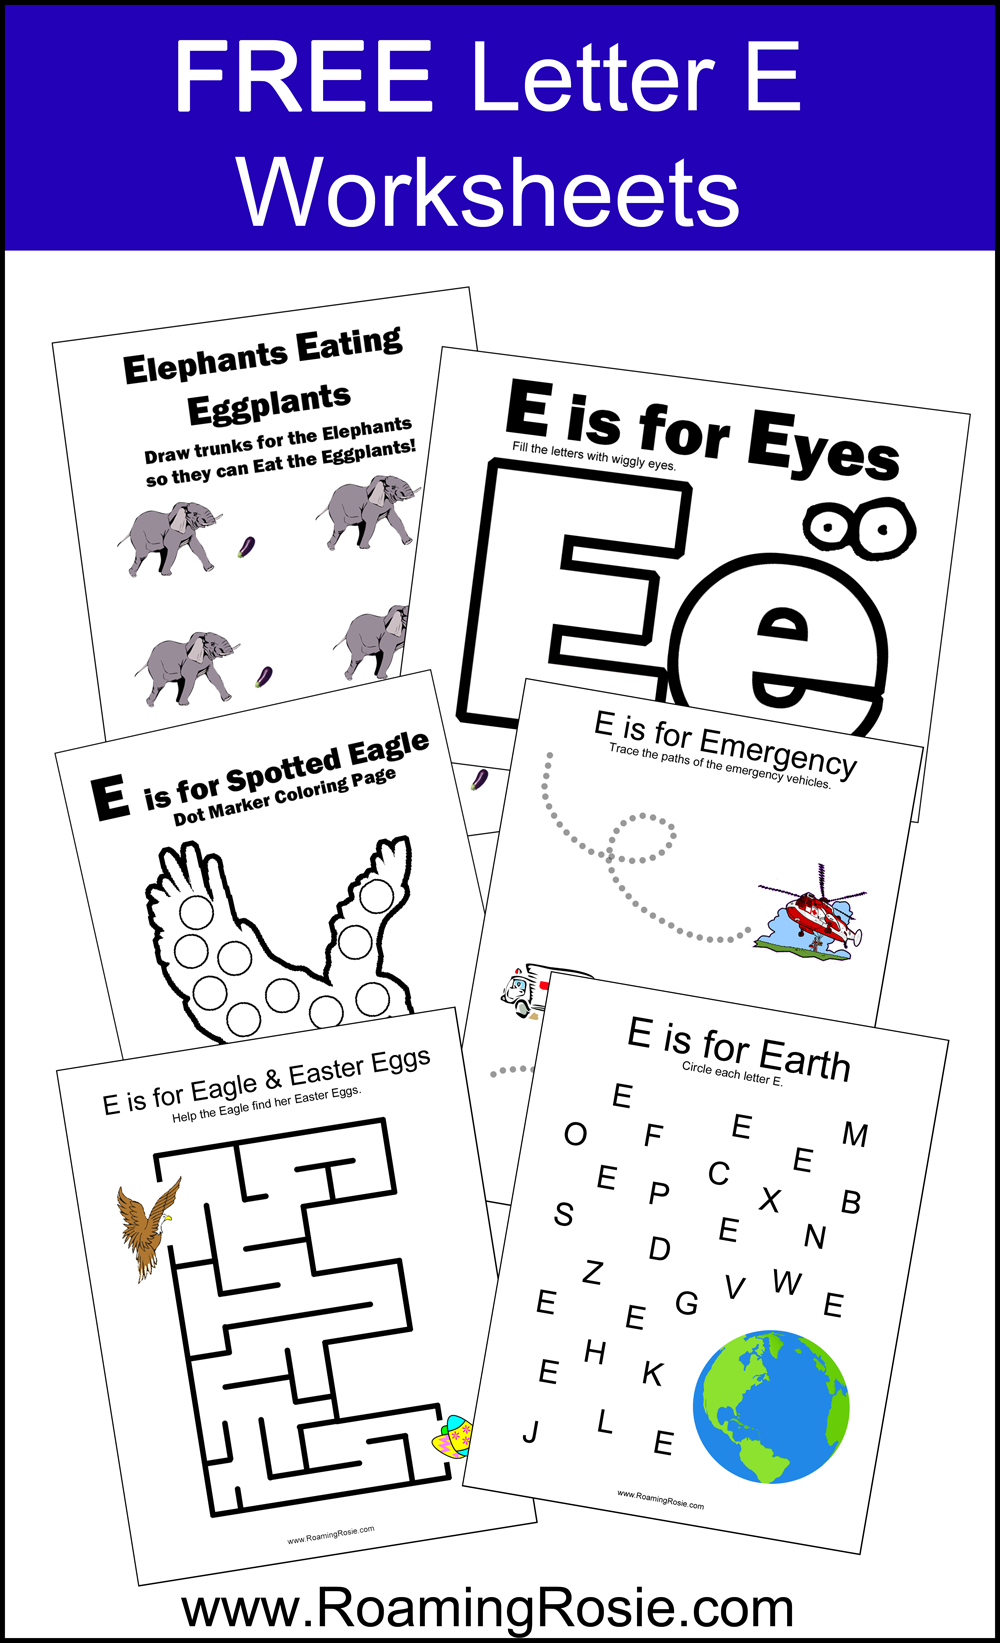 math worksheet : letter e free alphabet worksheets for kids  roaming rosie : Free Letter Worksheets For Kindergarten